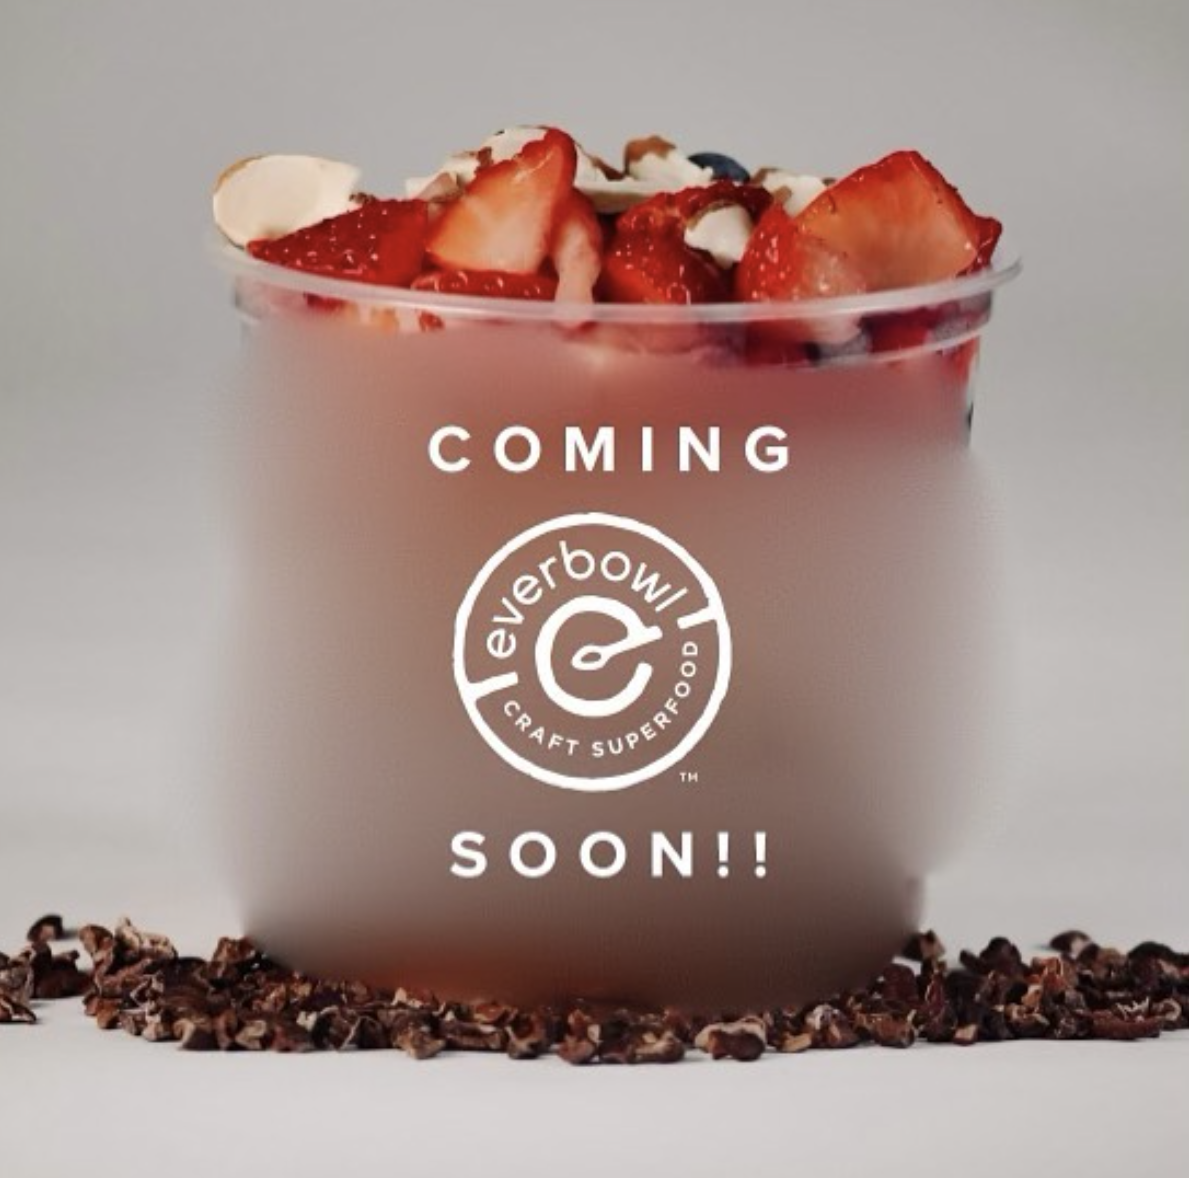 Smoothie Bowl Franchise, Everbowl, Opening New Location in Orlando End of May!